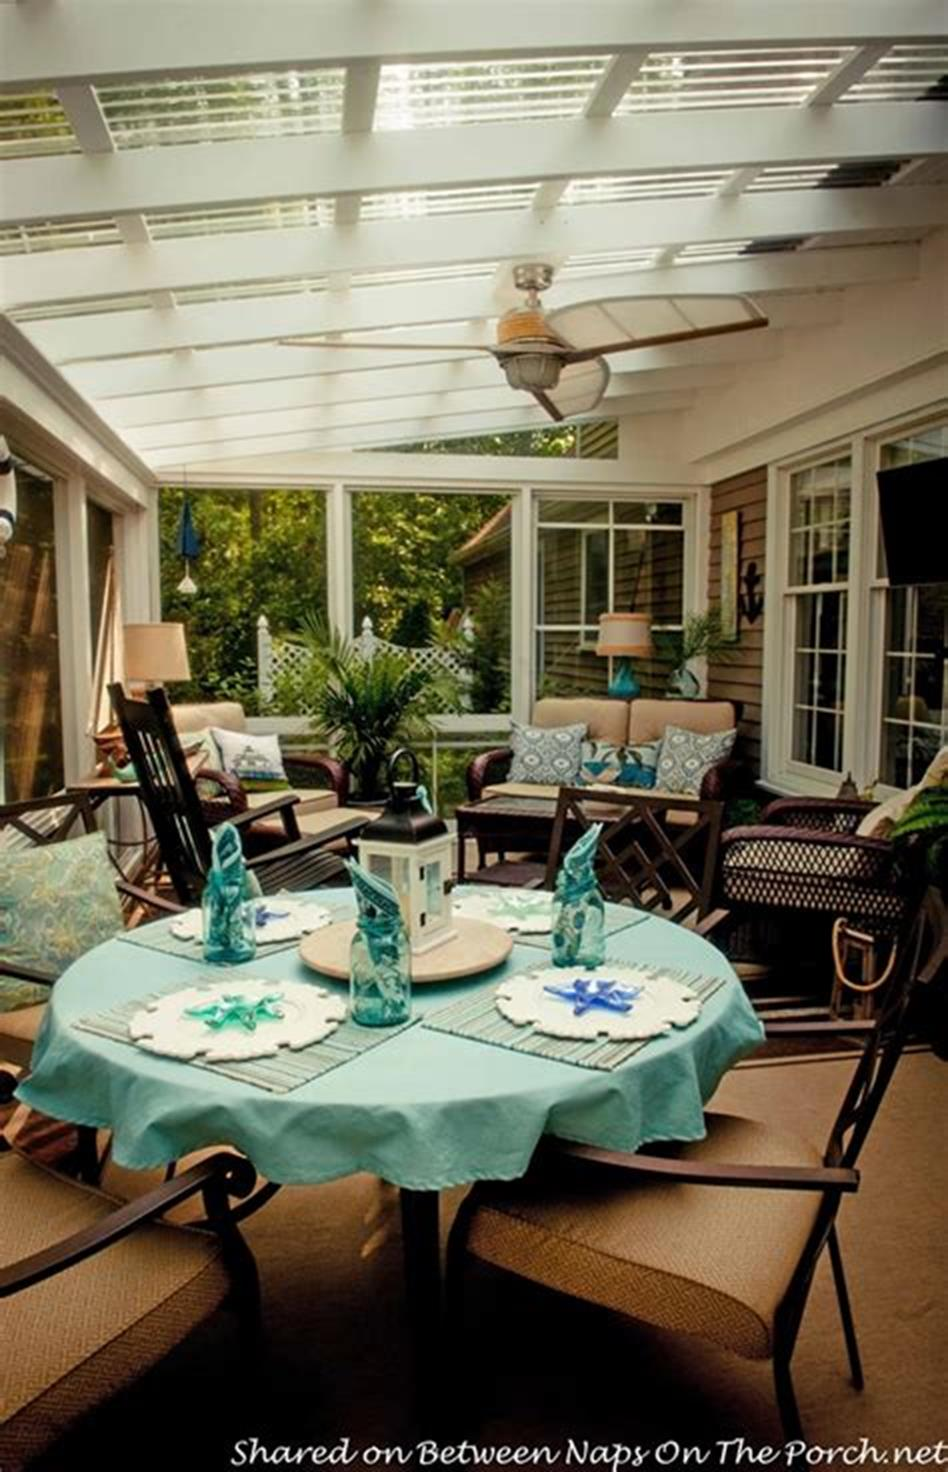 50 Most Popular Affordable Sunroom Design Ideas on a Budget 3